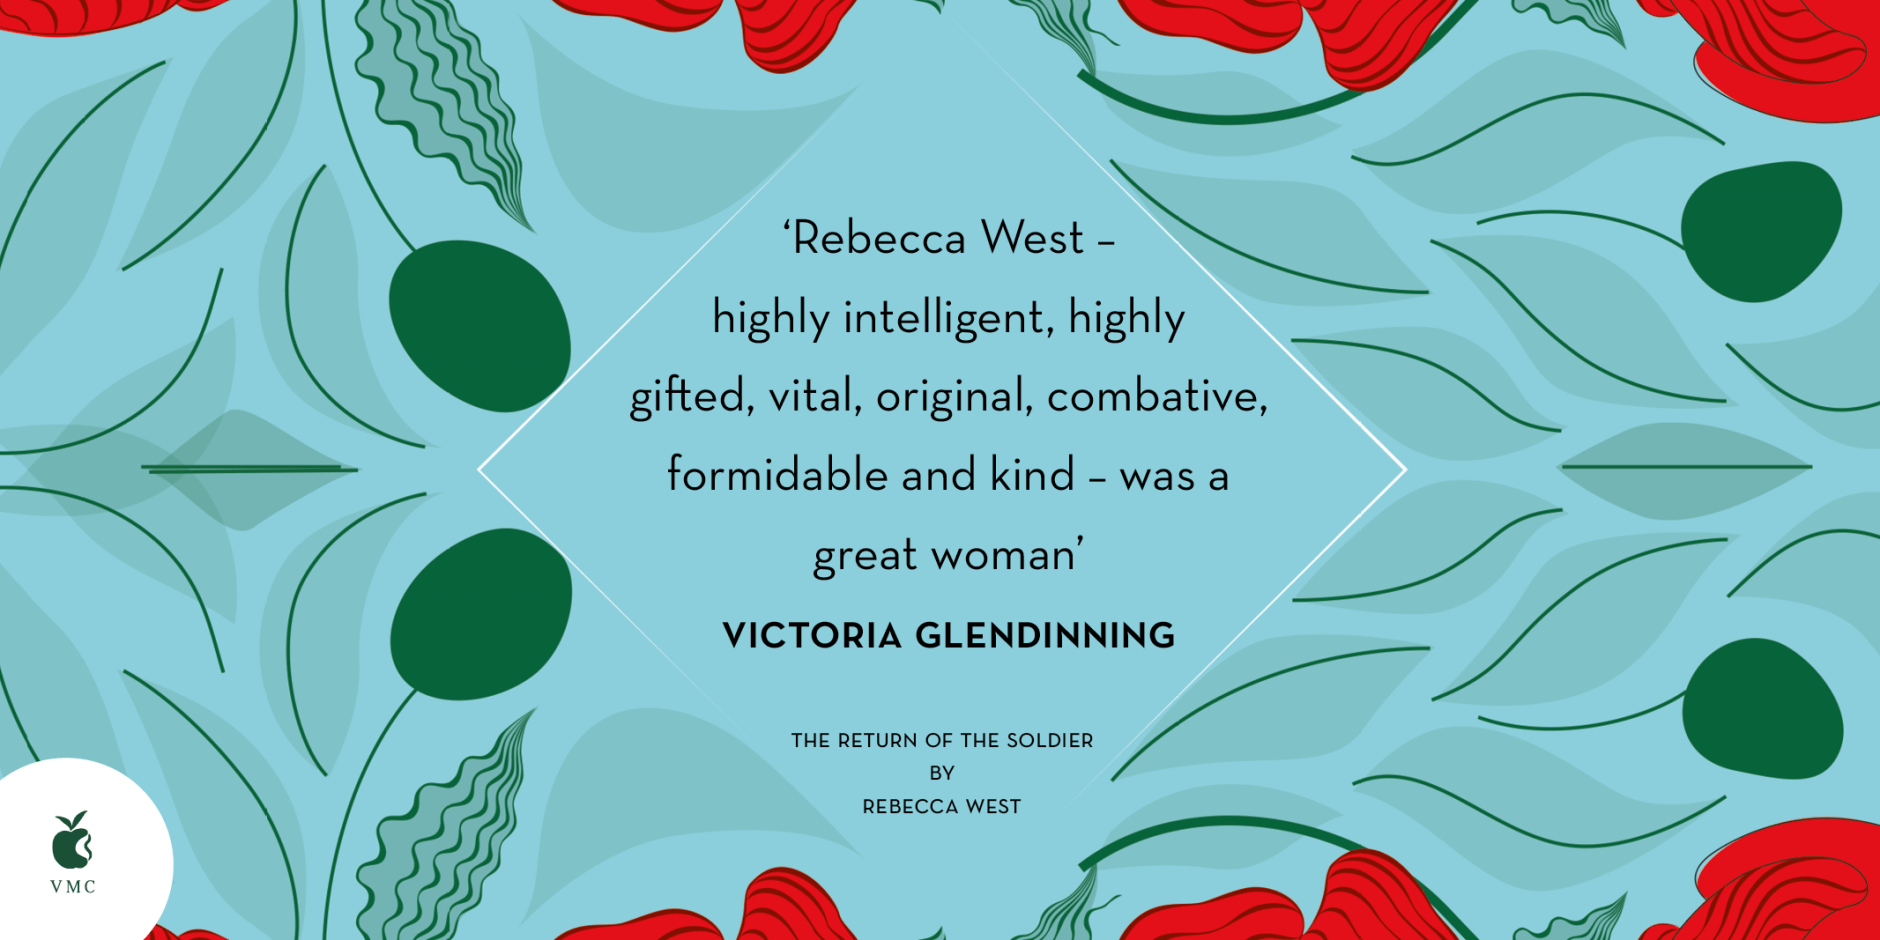 Victoria Glendinning on Rebecca West